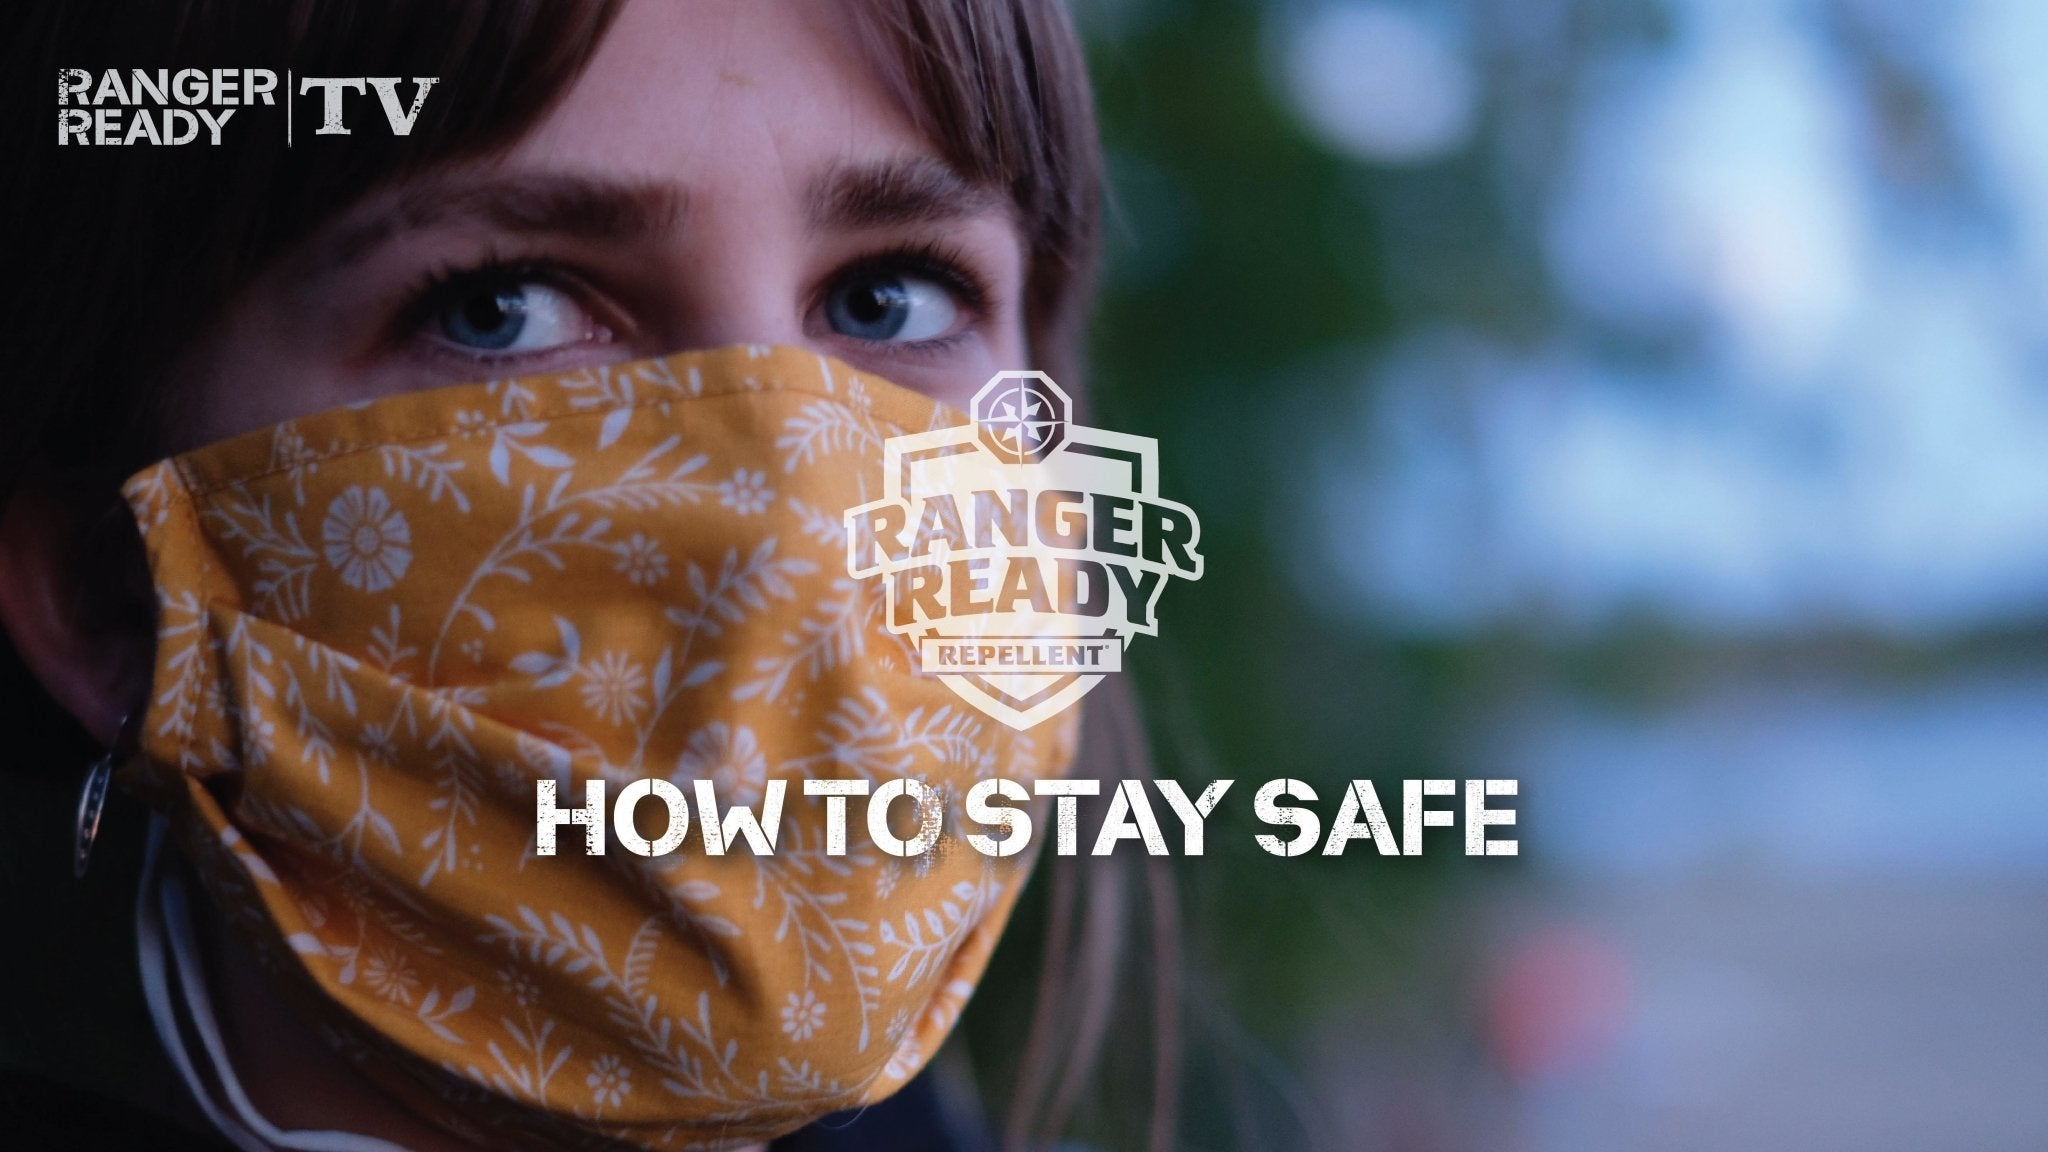 How to Stay Safe with Ranger Ready Hand Sanitizer | Featuring Dr. David Kent